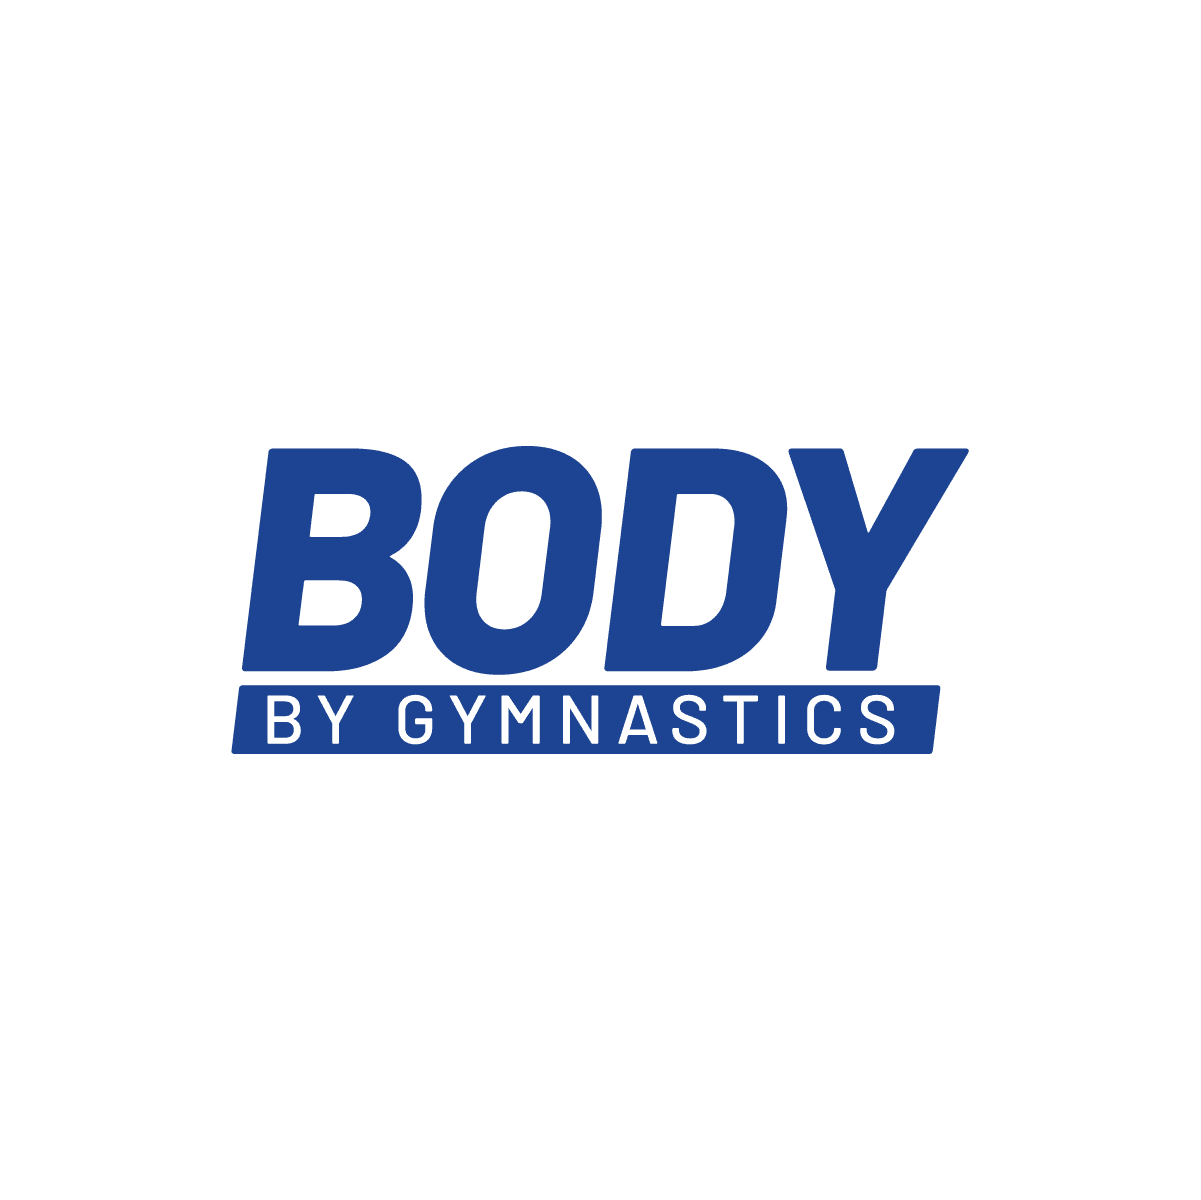 BODY BY GYMNASTICS